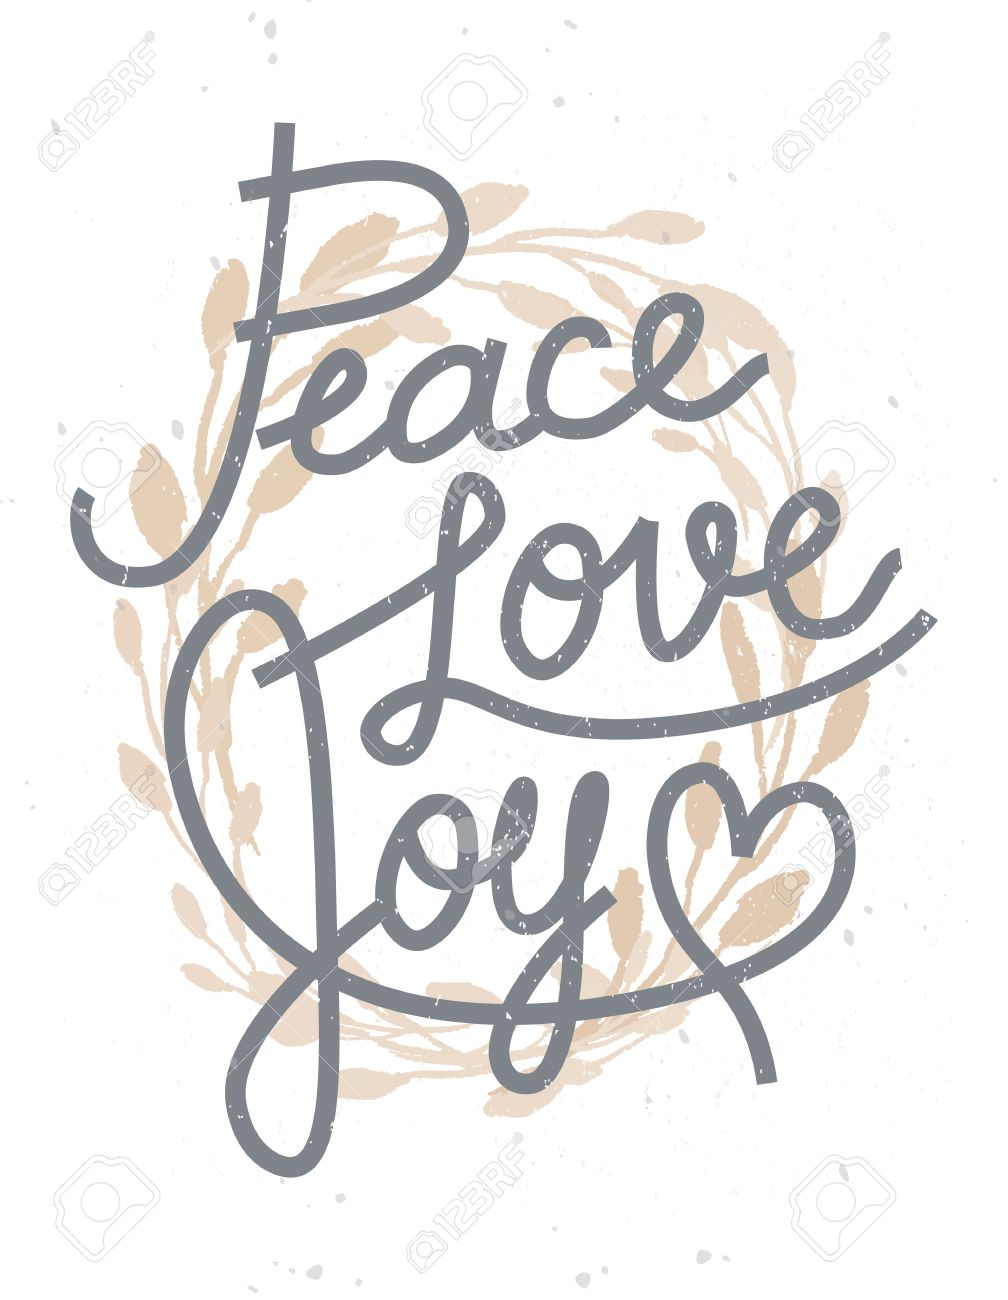 Quote About Peace And Love Peace Love Joy Christmas Lettering Quote With A Golden Wreath